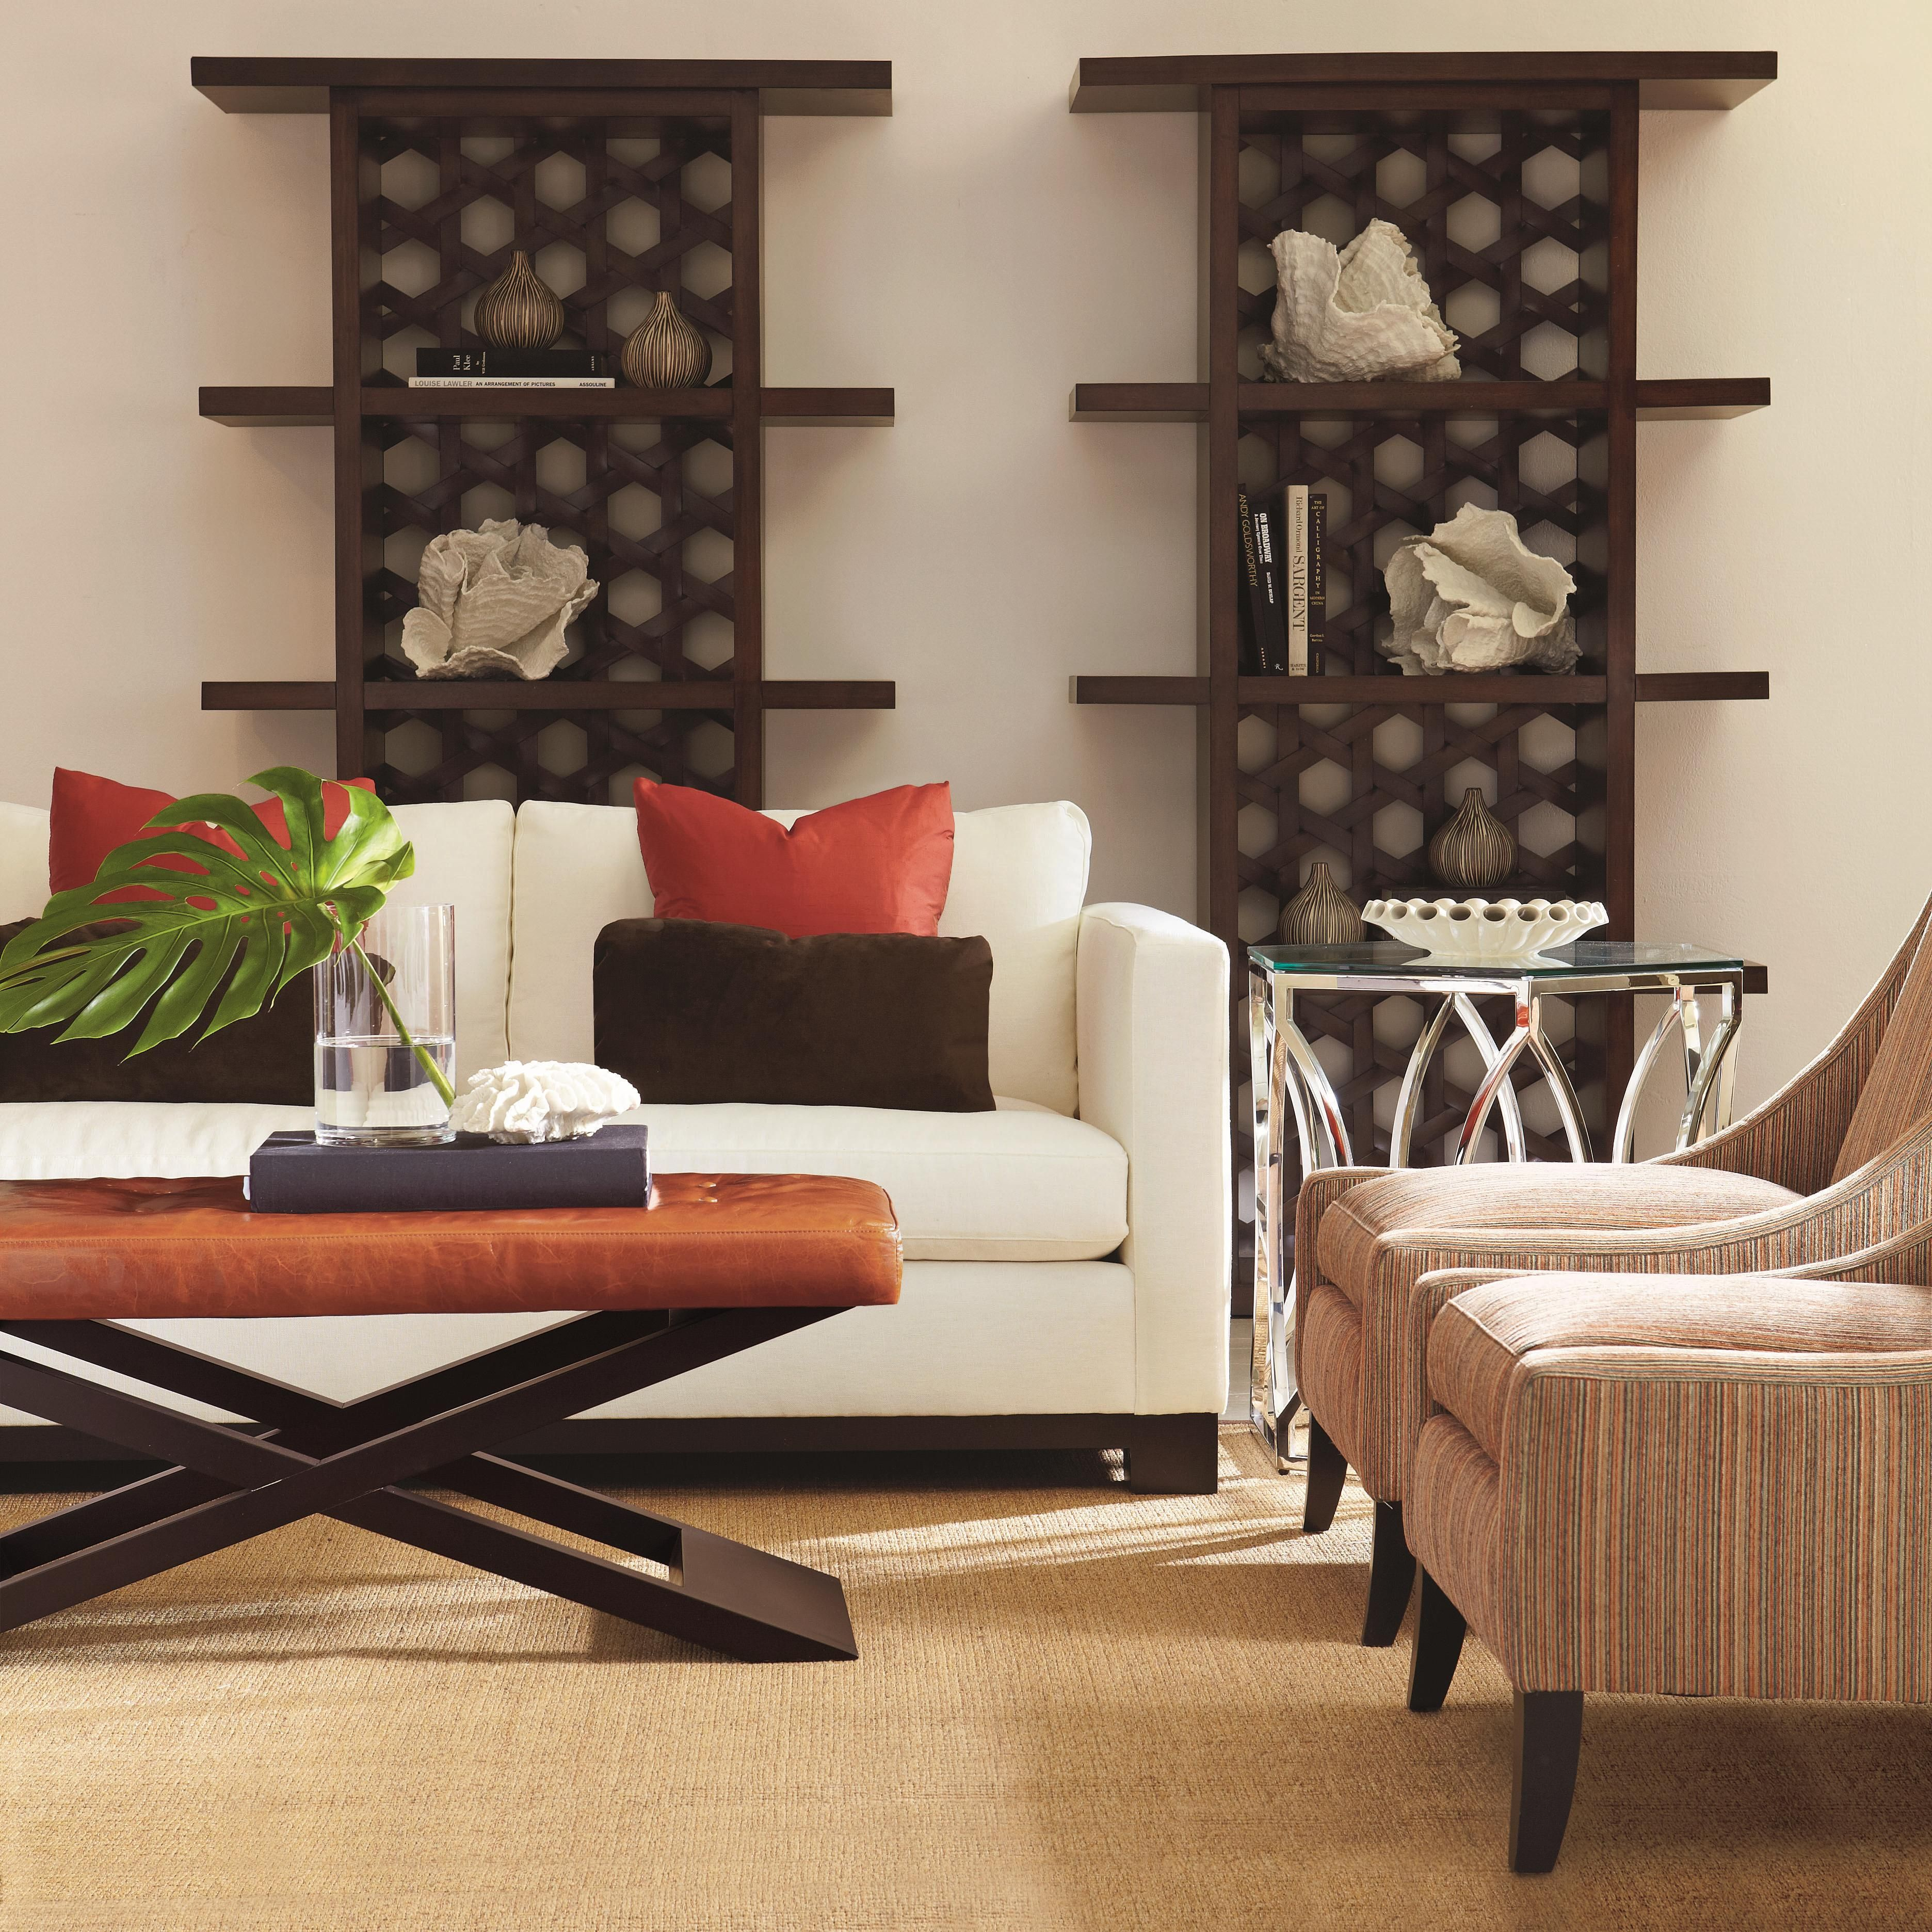 Furniture Store Contemporary: Lanai (N165) By Bernhardt